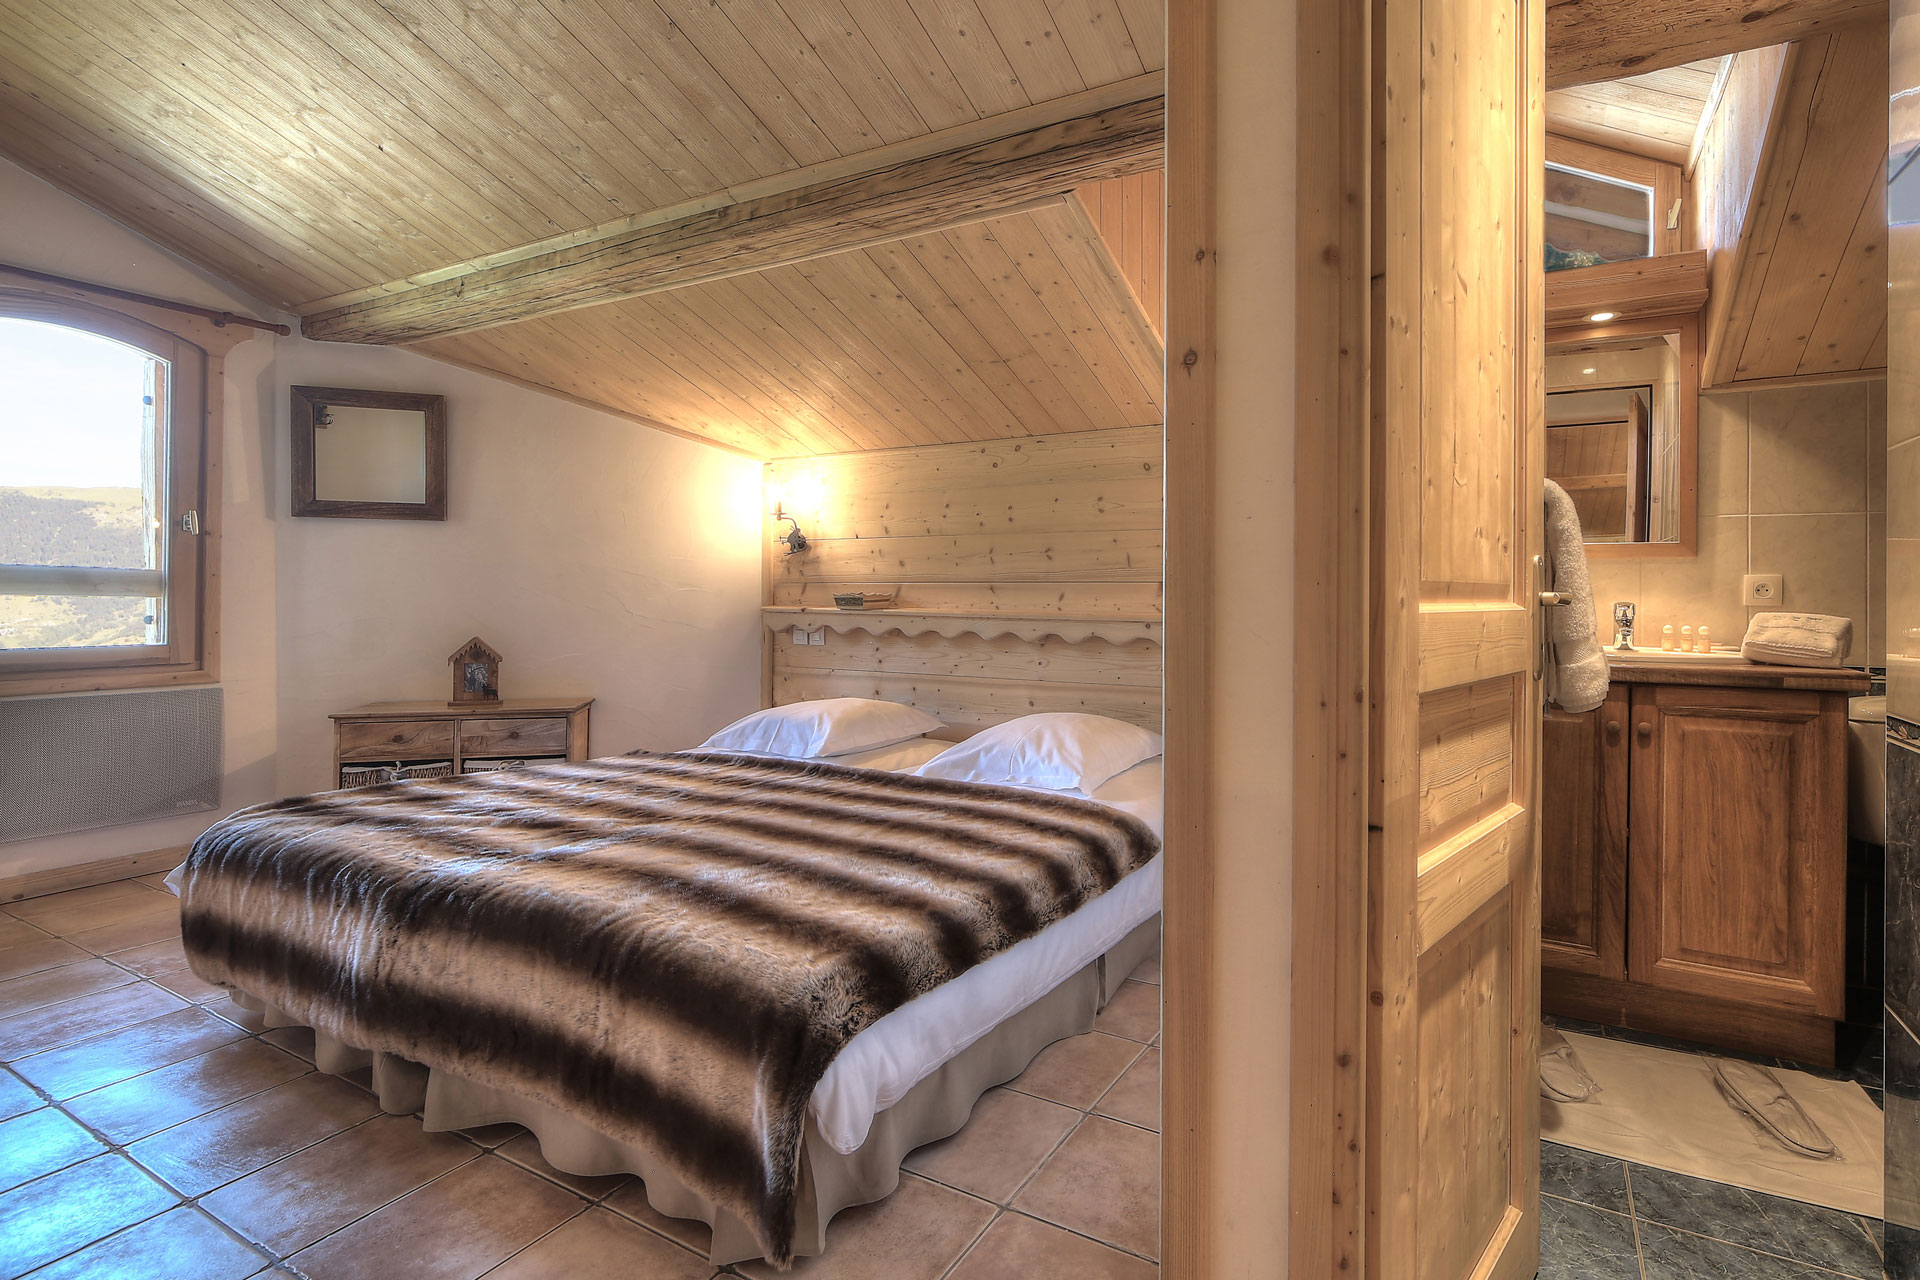 Location dans un chalet traditionnel